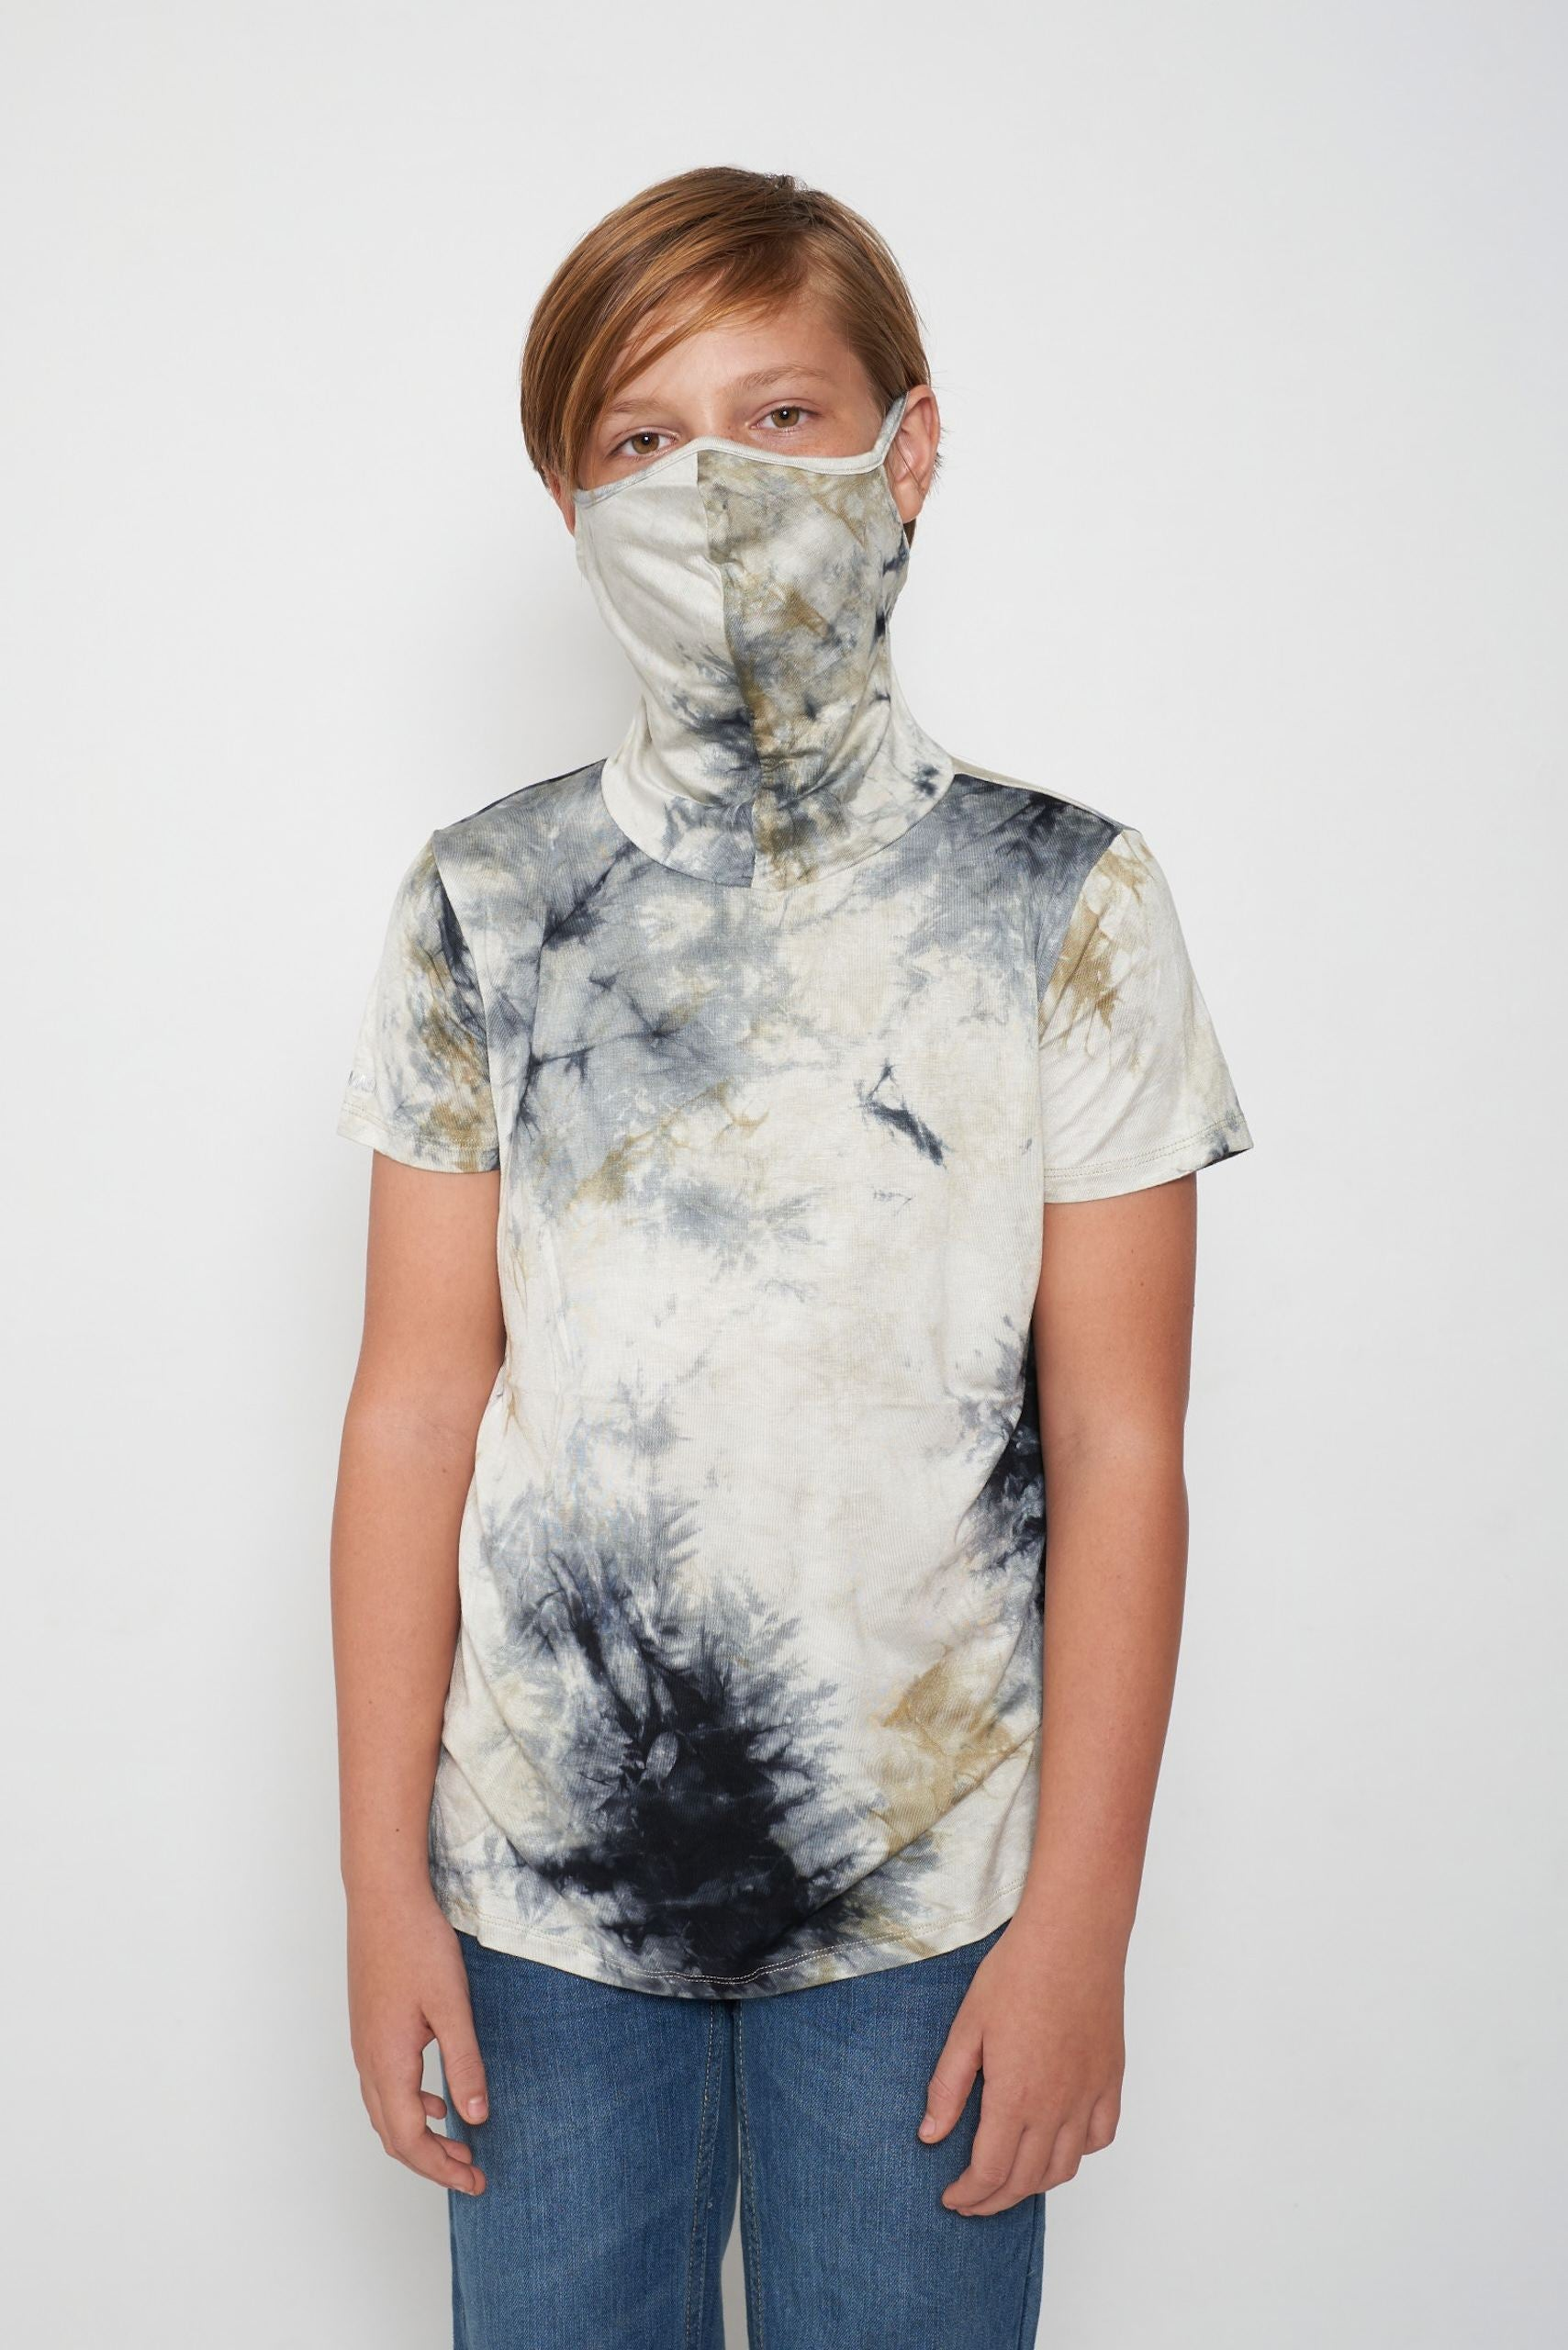 Kids Short Sleeve Green White Gray Blue Tie-dye #26 Shmask™ Earloop Face Mask for Kids and Adults